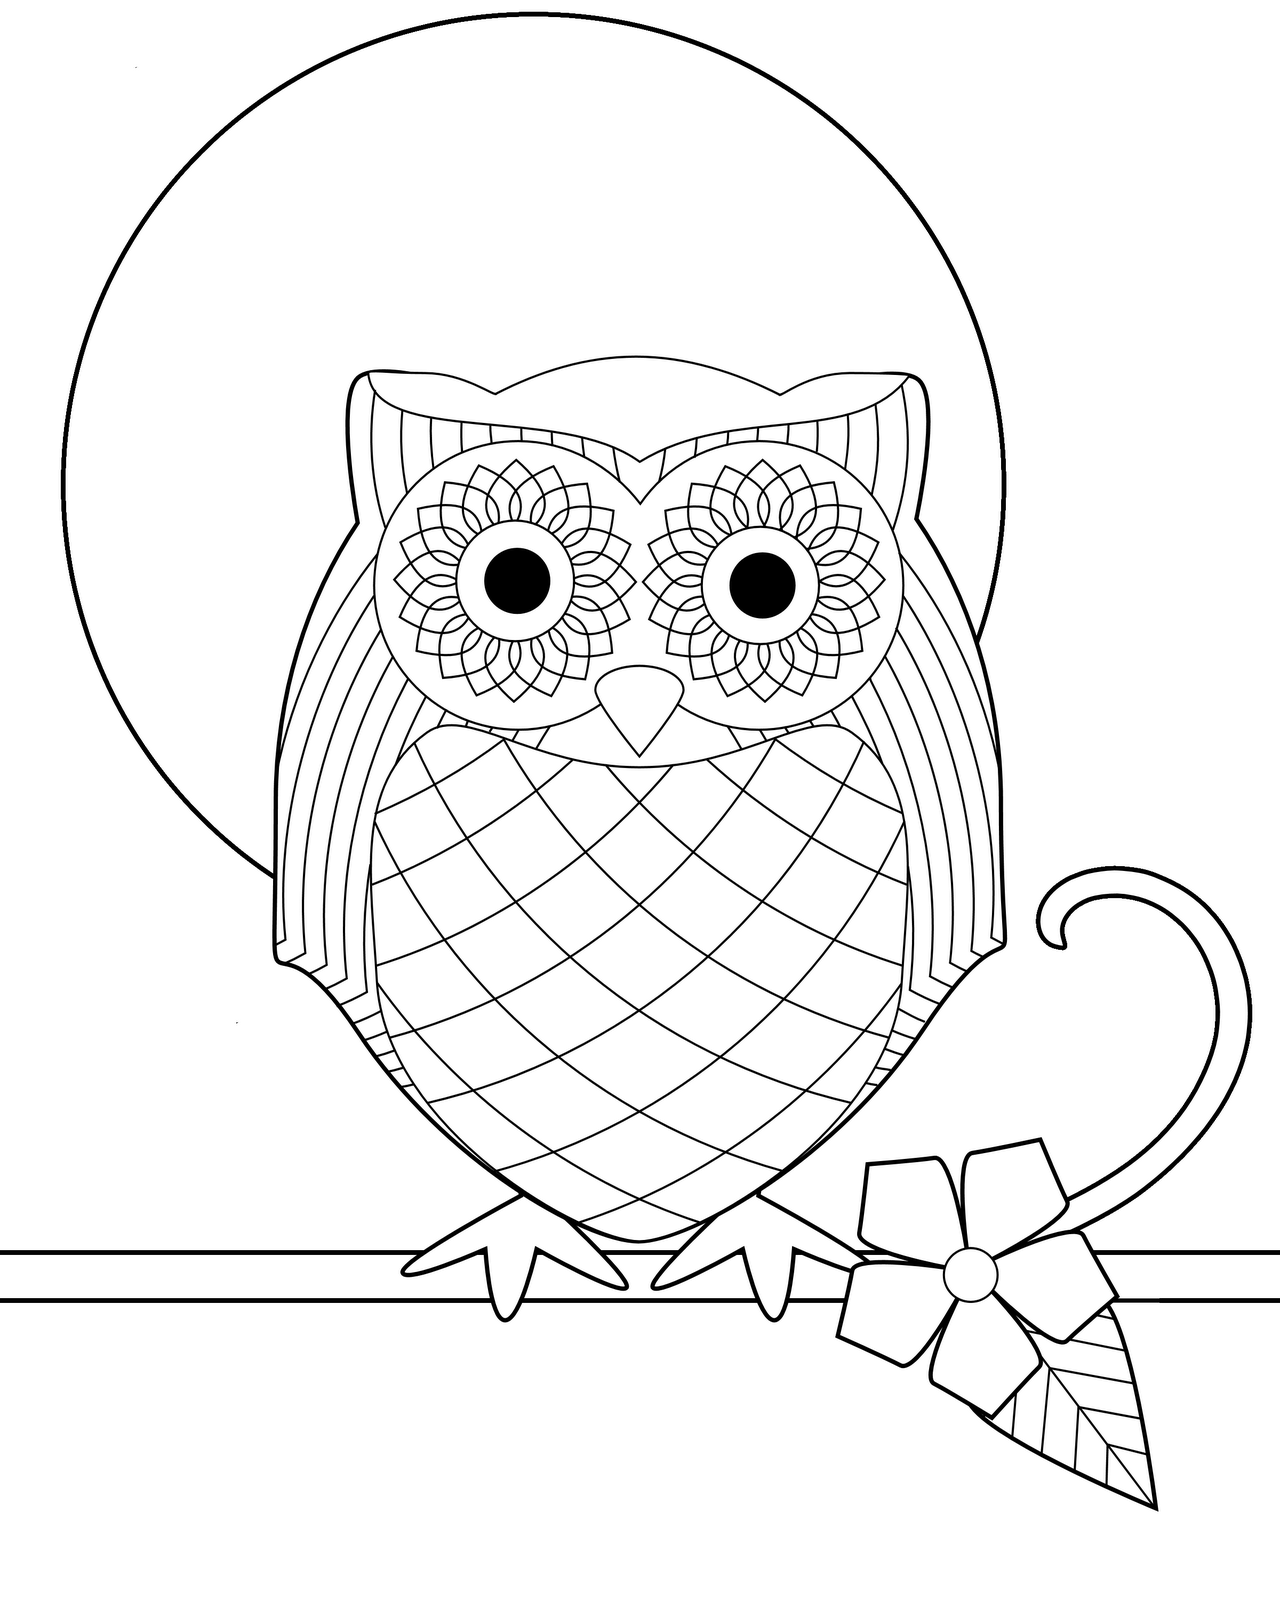 a owl coloring pages - photo #2